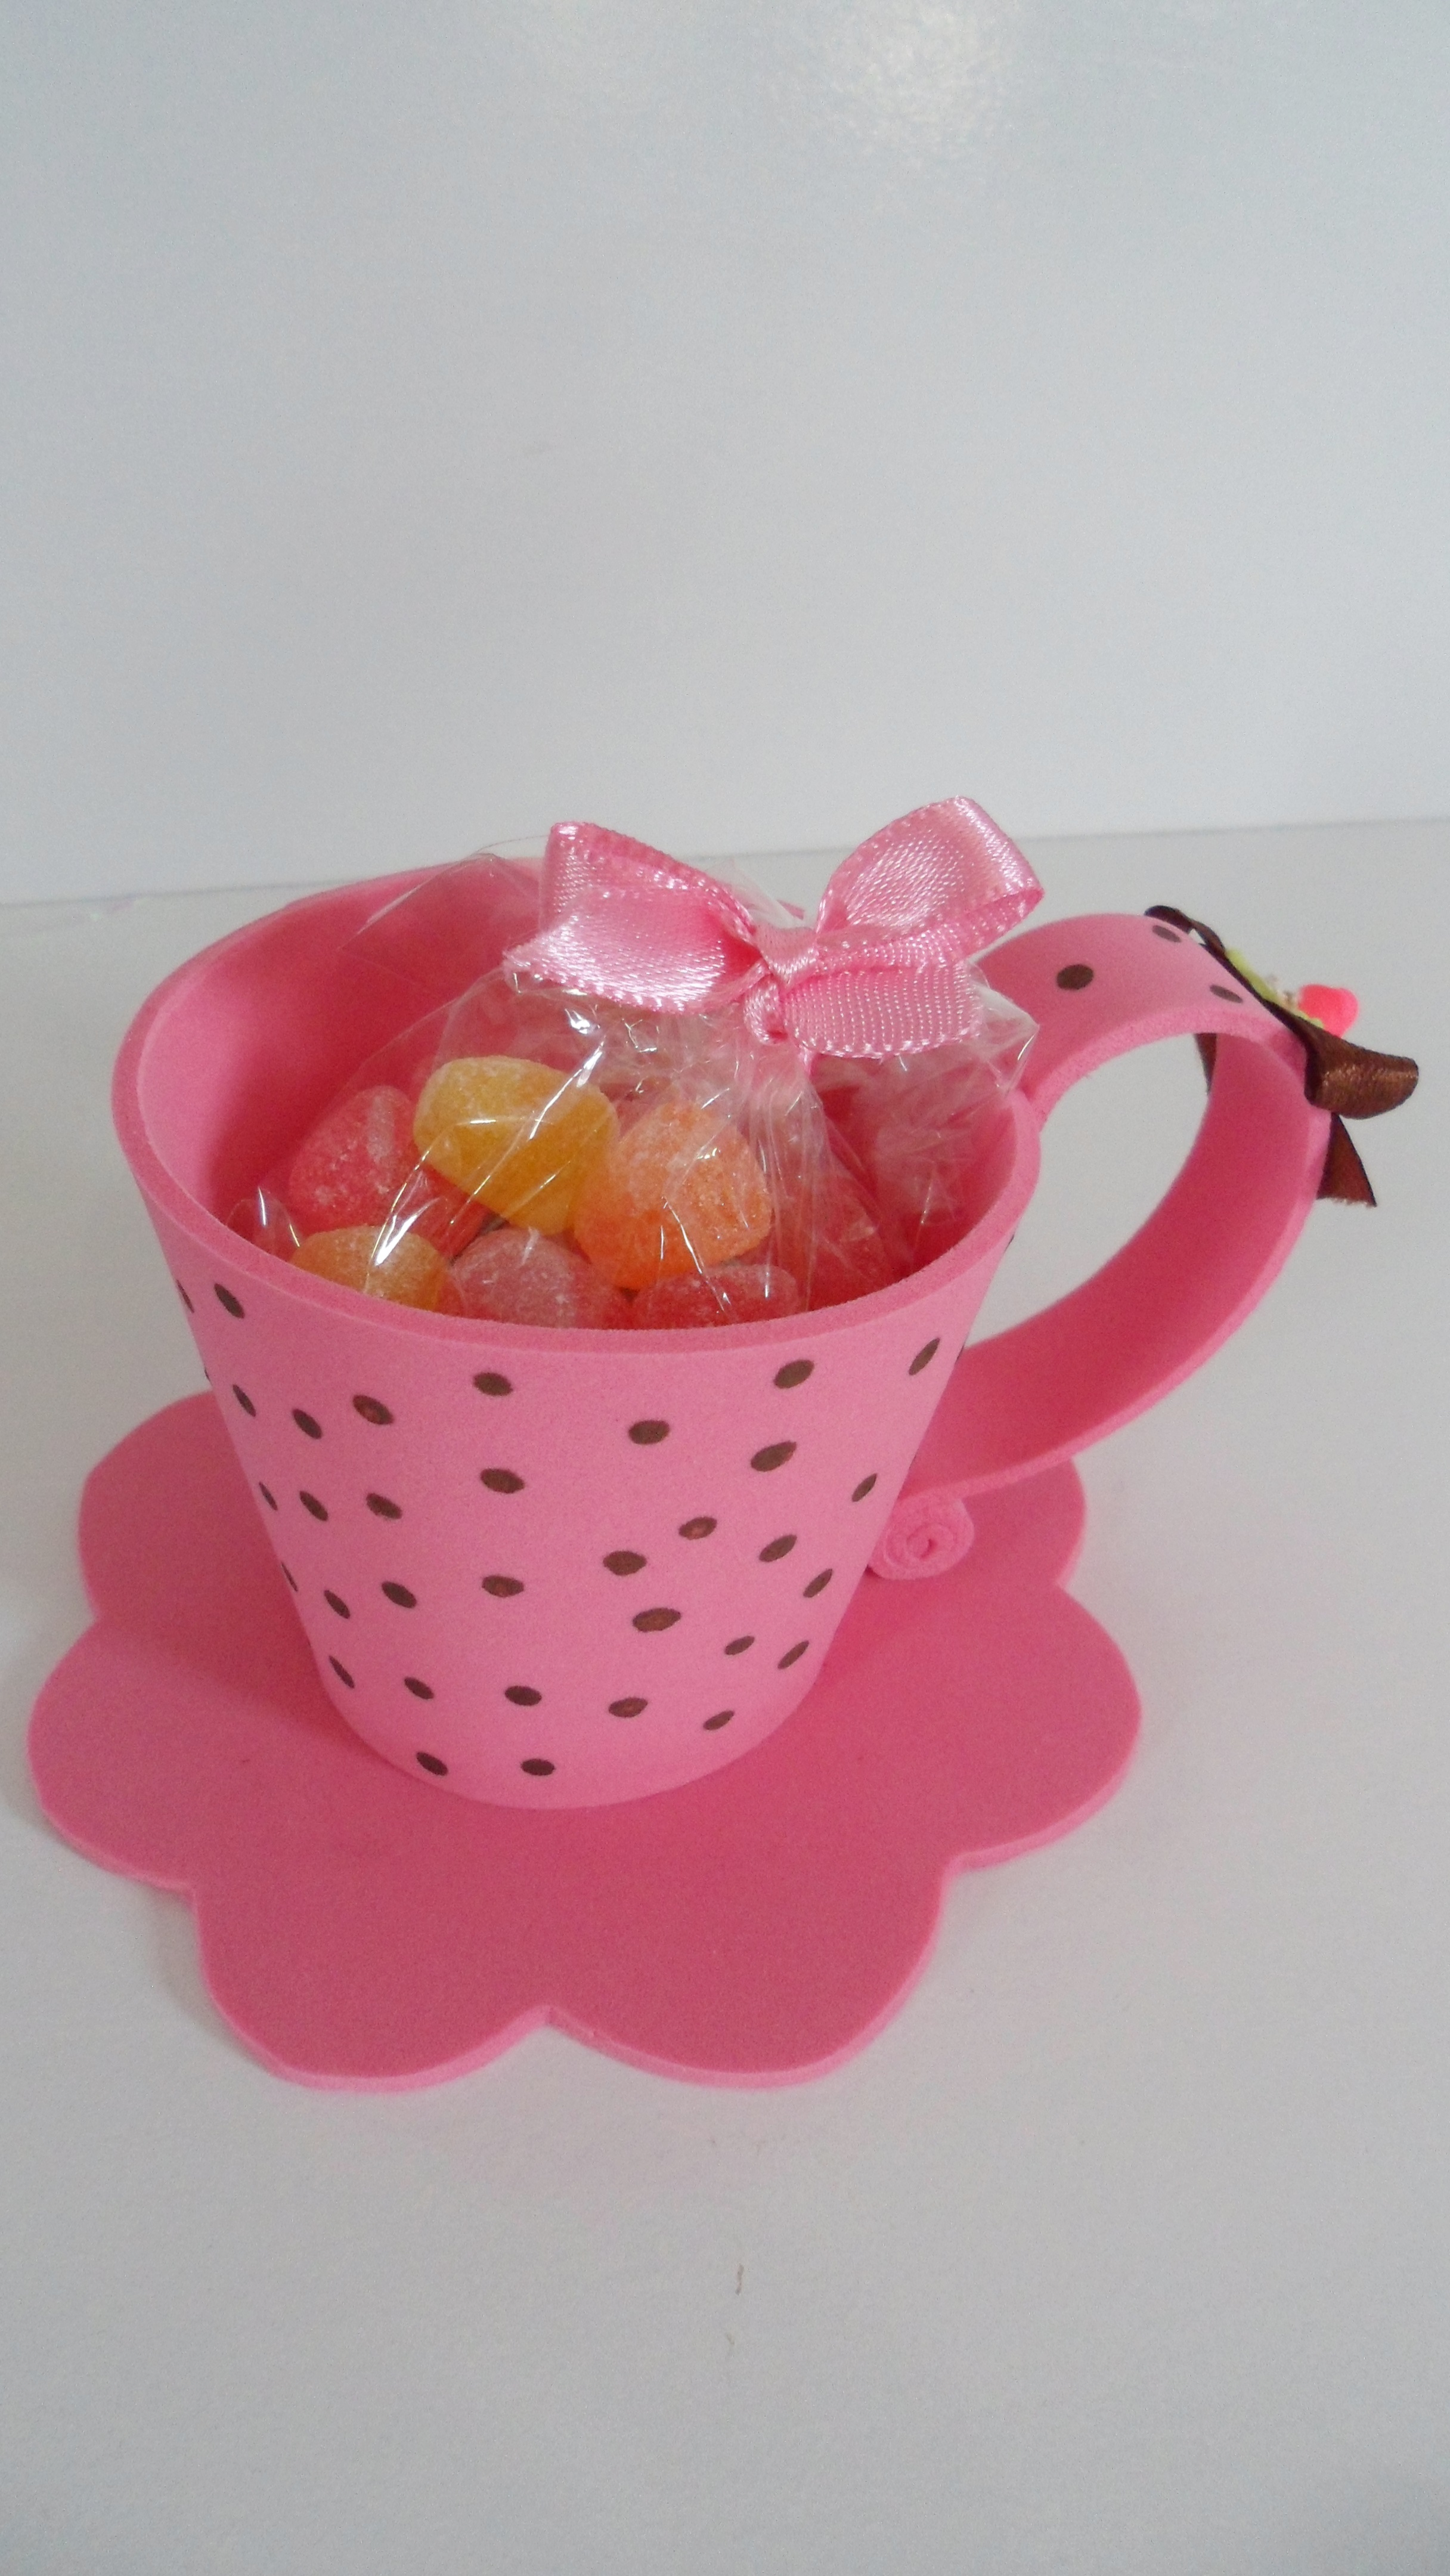 cup-on-eva-with-jelly beans-cup-on-eva